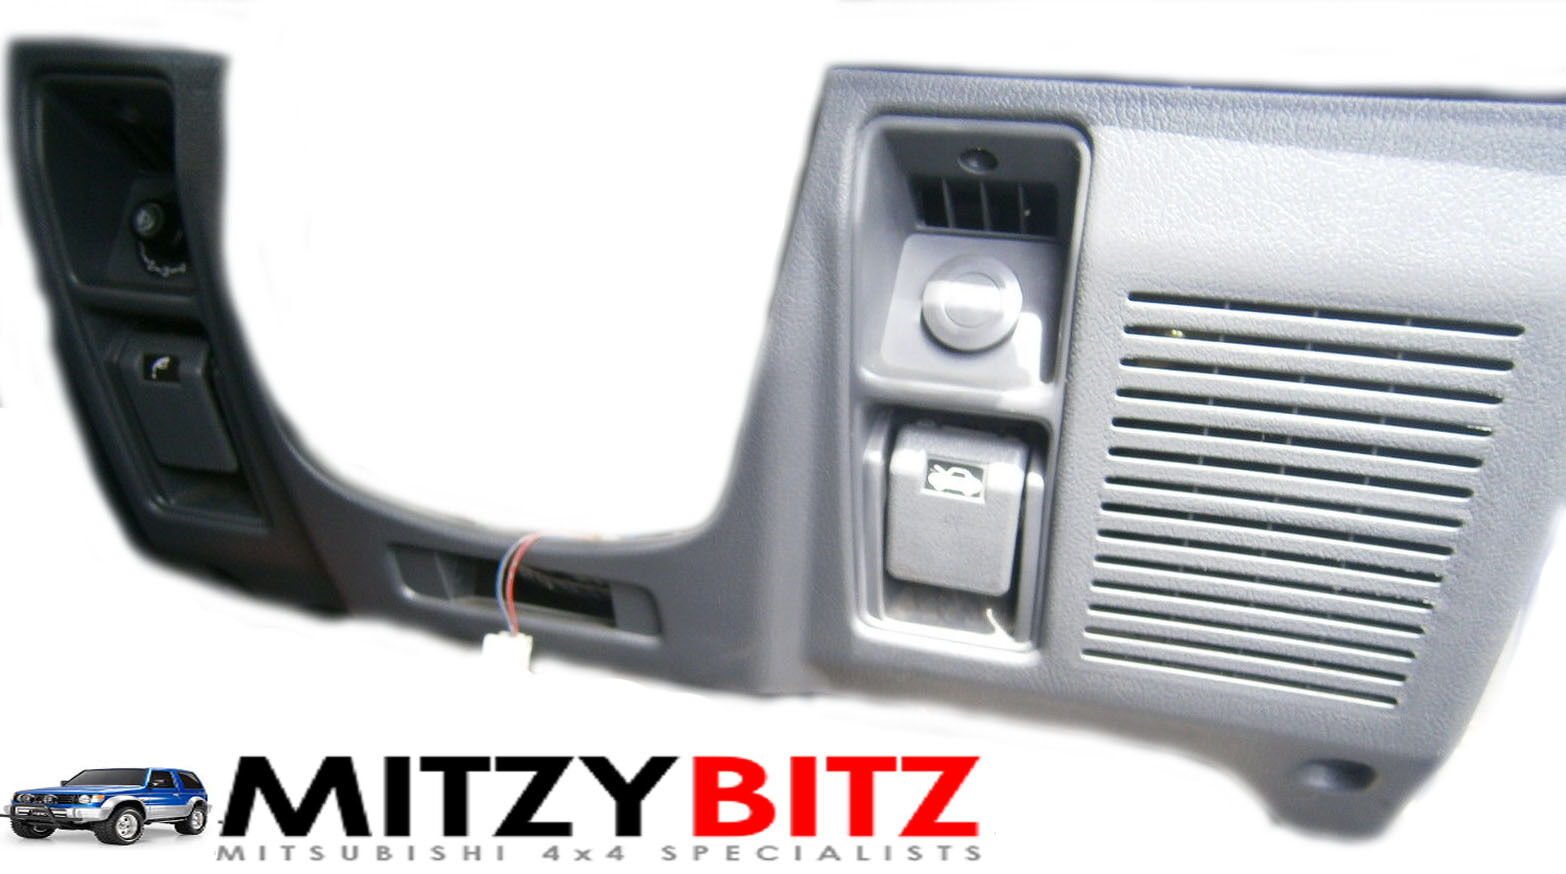 Mitsubishi Pajero Shogun Mk2 91 99 Lower Grey Dash Panel Cover Trim Montero Fuse Box Only 1 Of 1only 5 Available